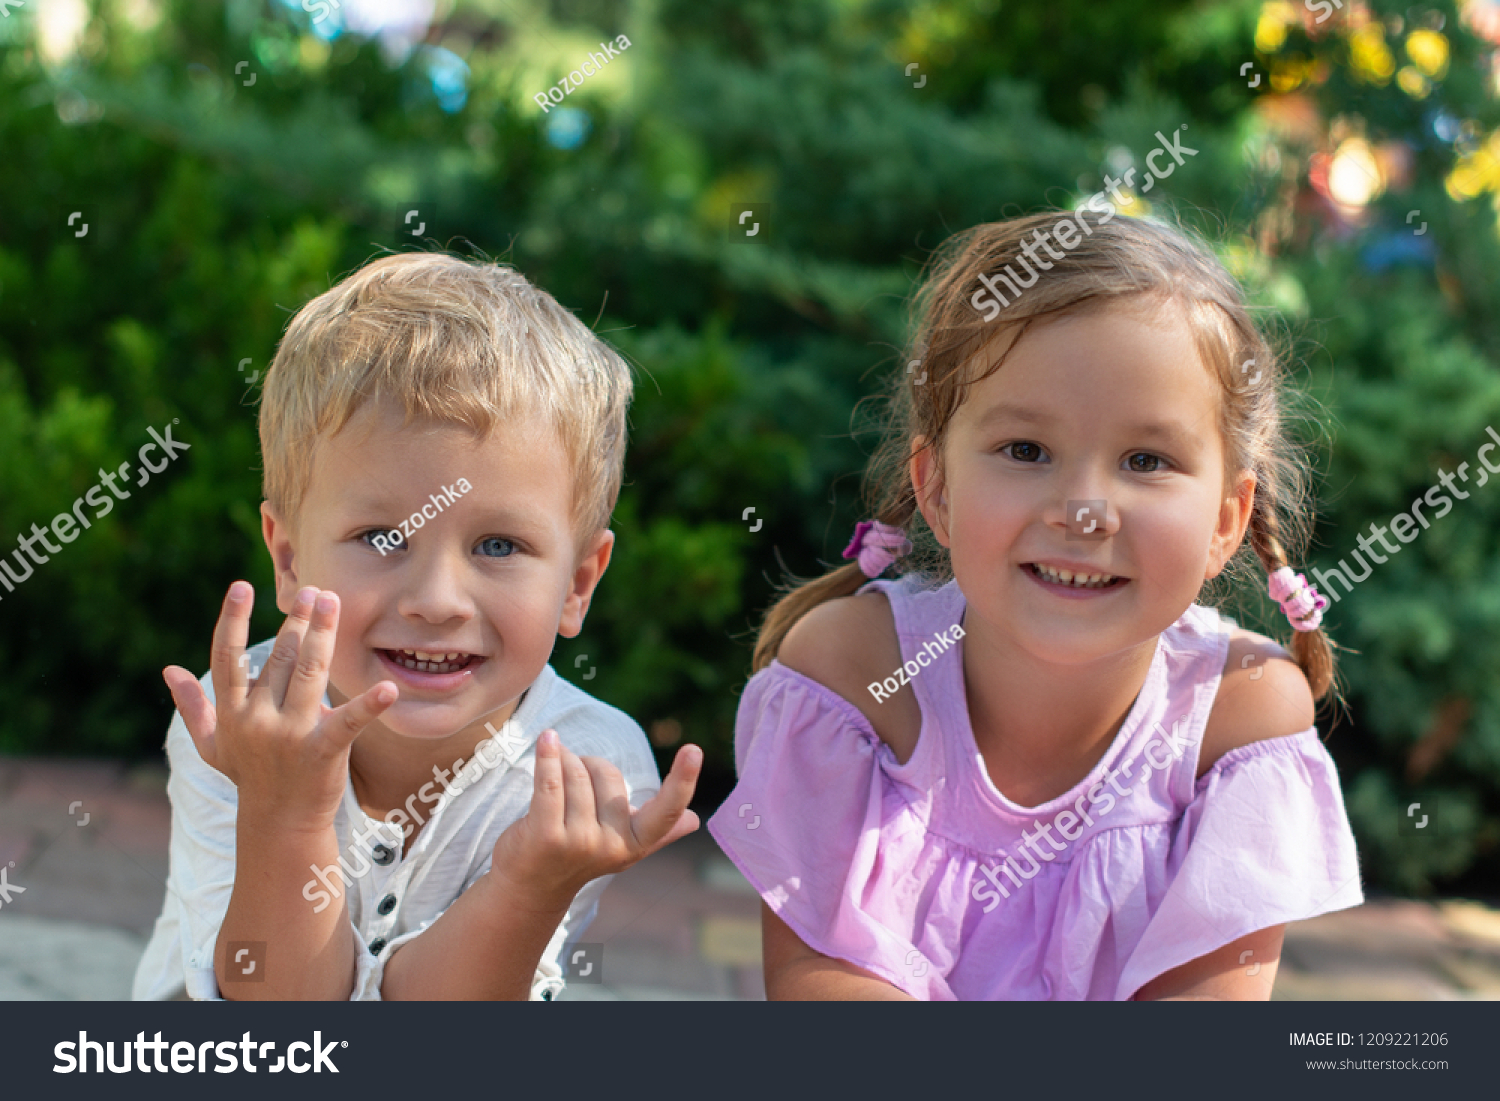 18a74ca4b2ed Waist up portrait of two cute little smiling children , boy and girl,  brother and